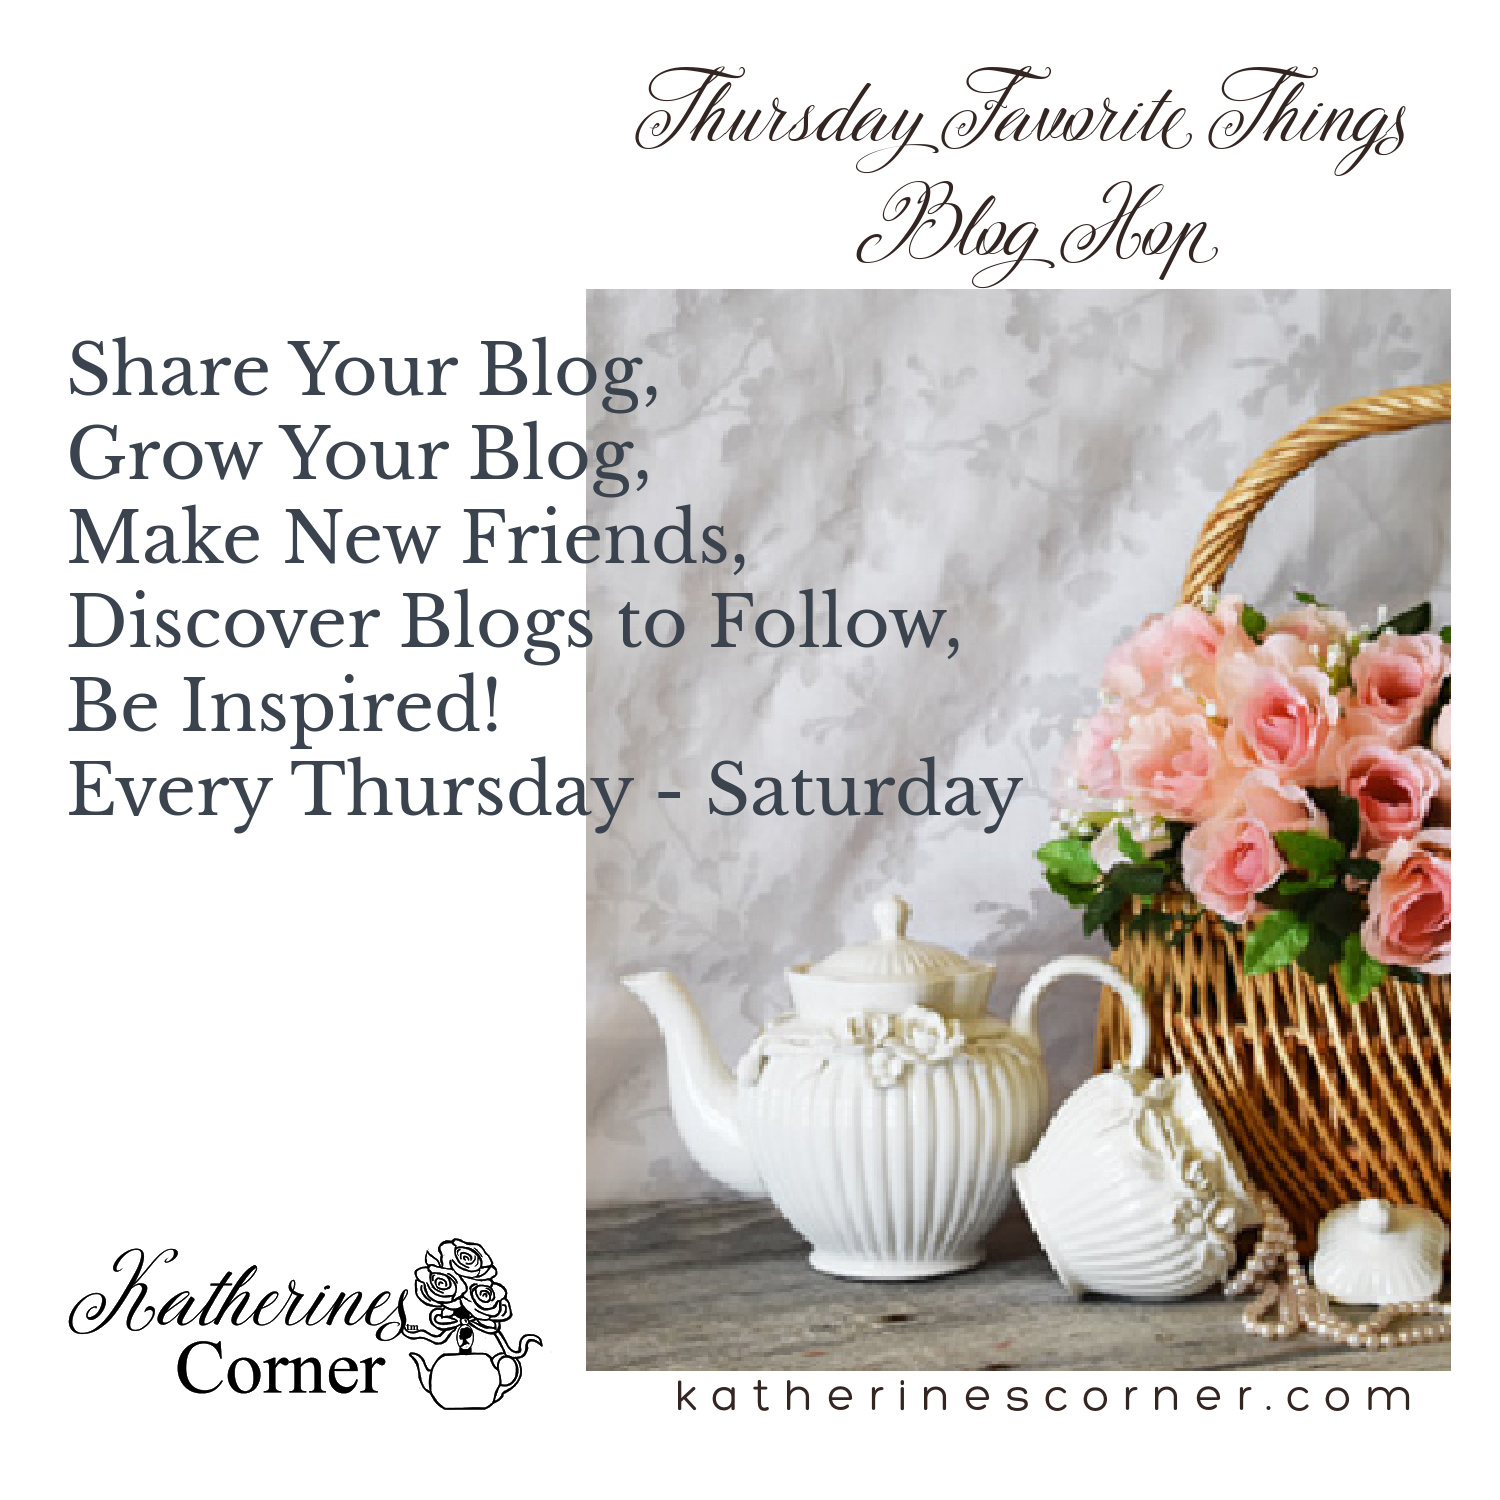 share your blogs and discover new blogs